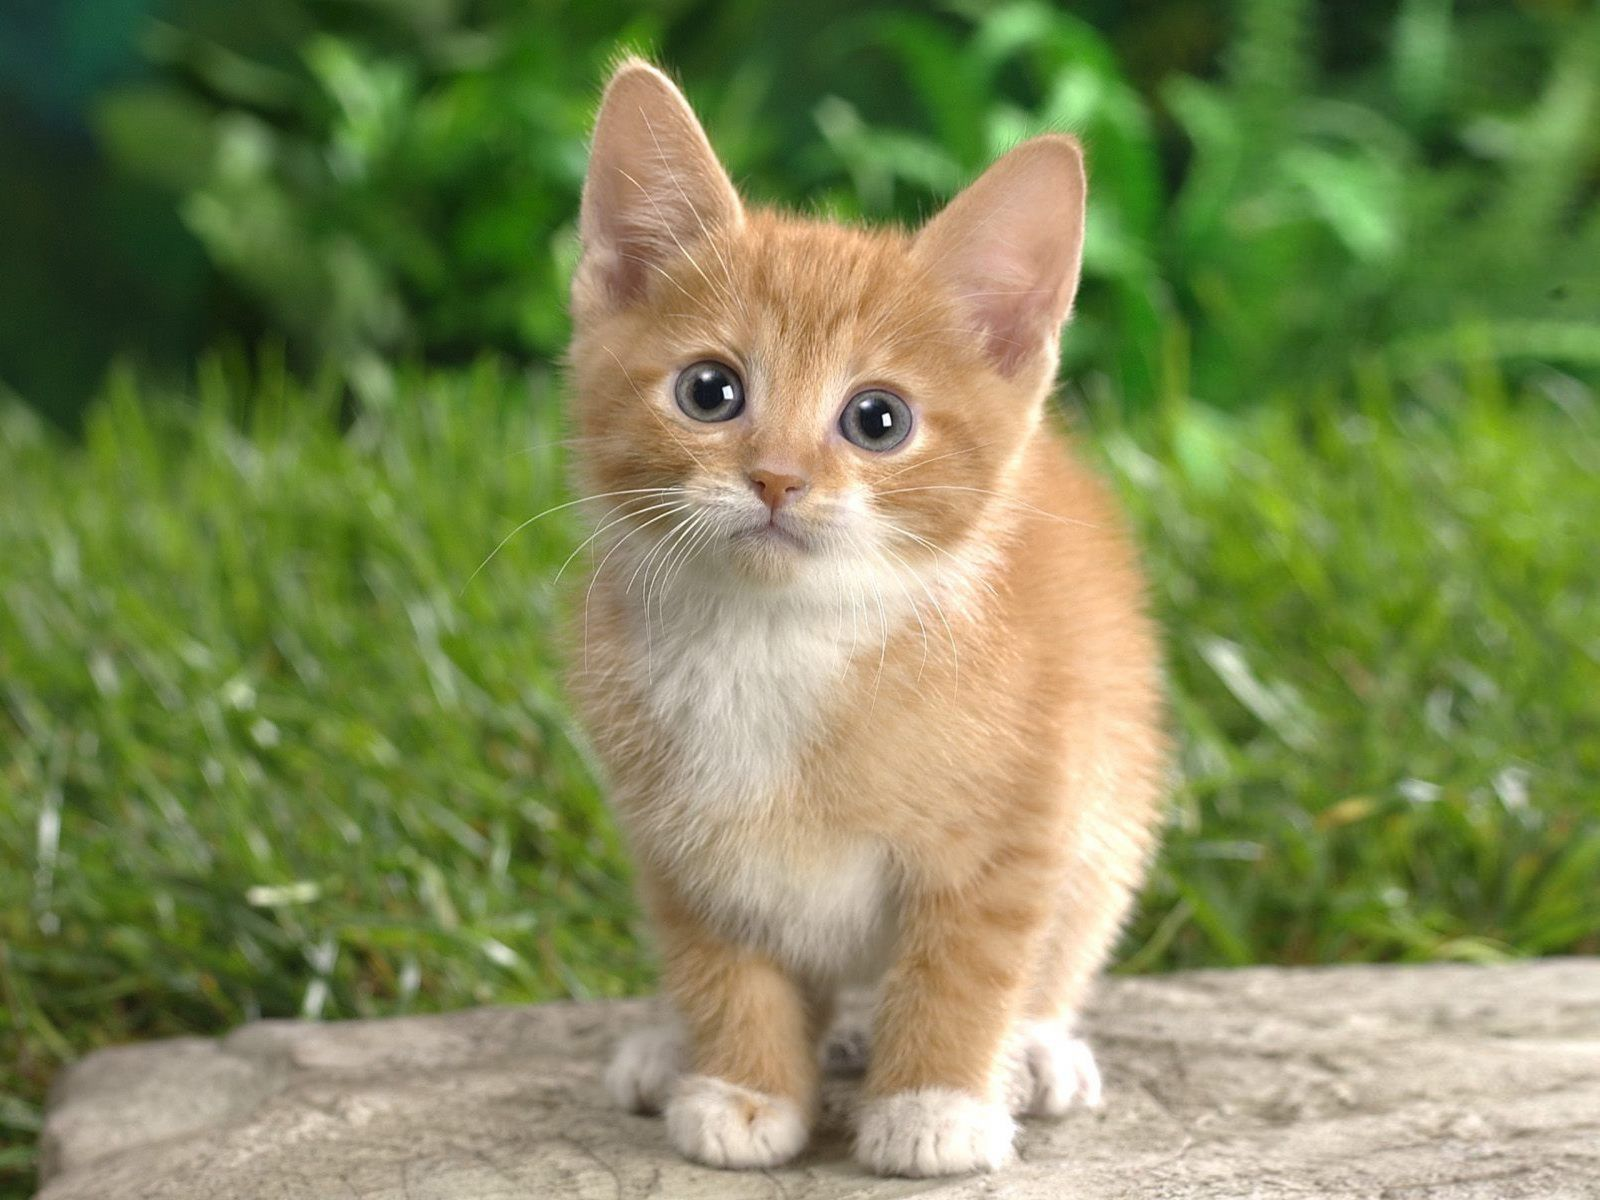 Innocent And Cute Cat Wallpaper Hd Animals And Birds Wallpapers Cute Cat Wallpaper Kittens Cutest Beautiful Cats